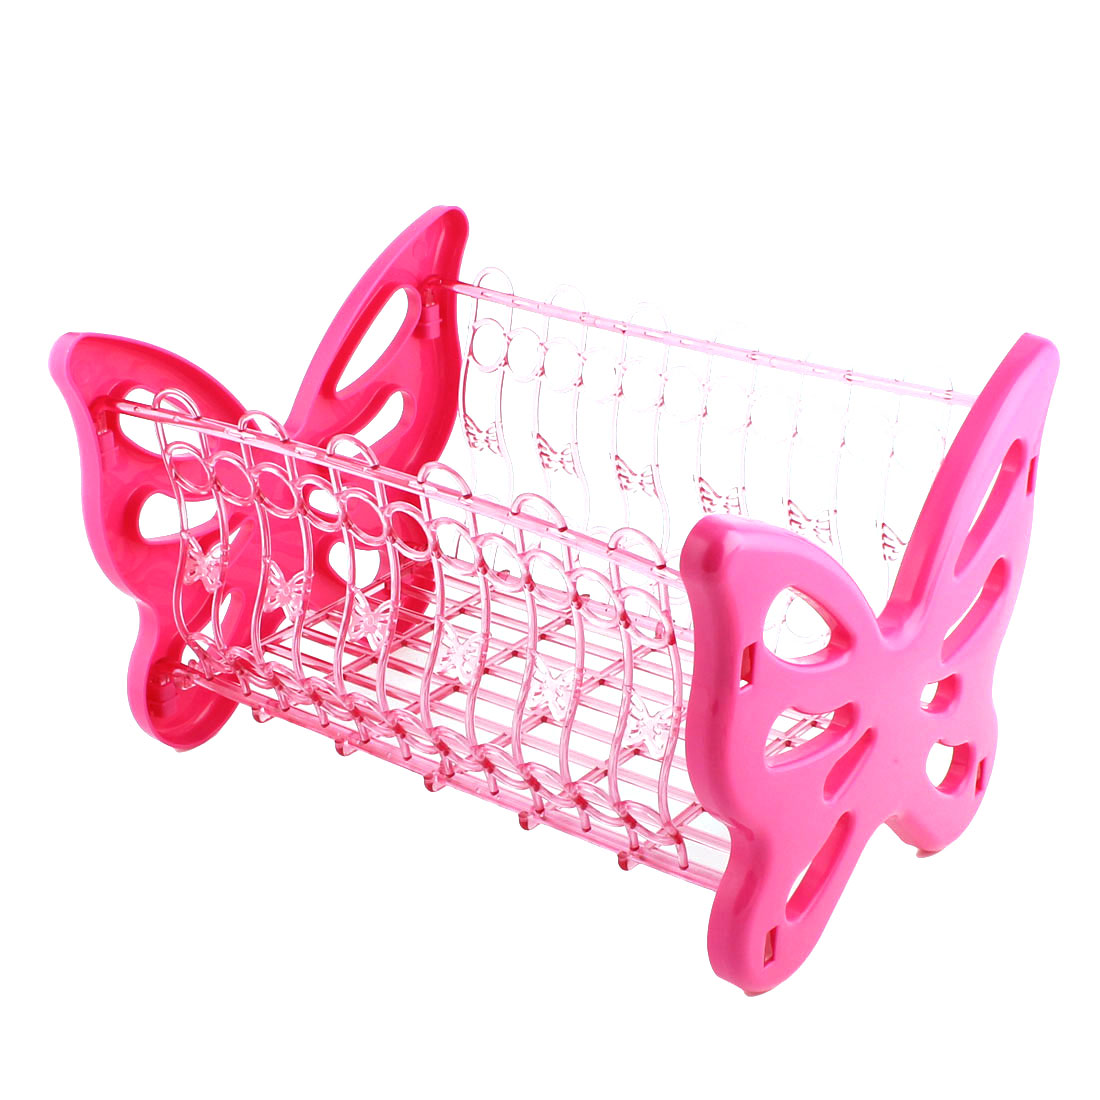 Household Bathroom Butterfly Design PP Hollow Out Storage Rack Basket Holder Pink